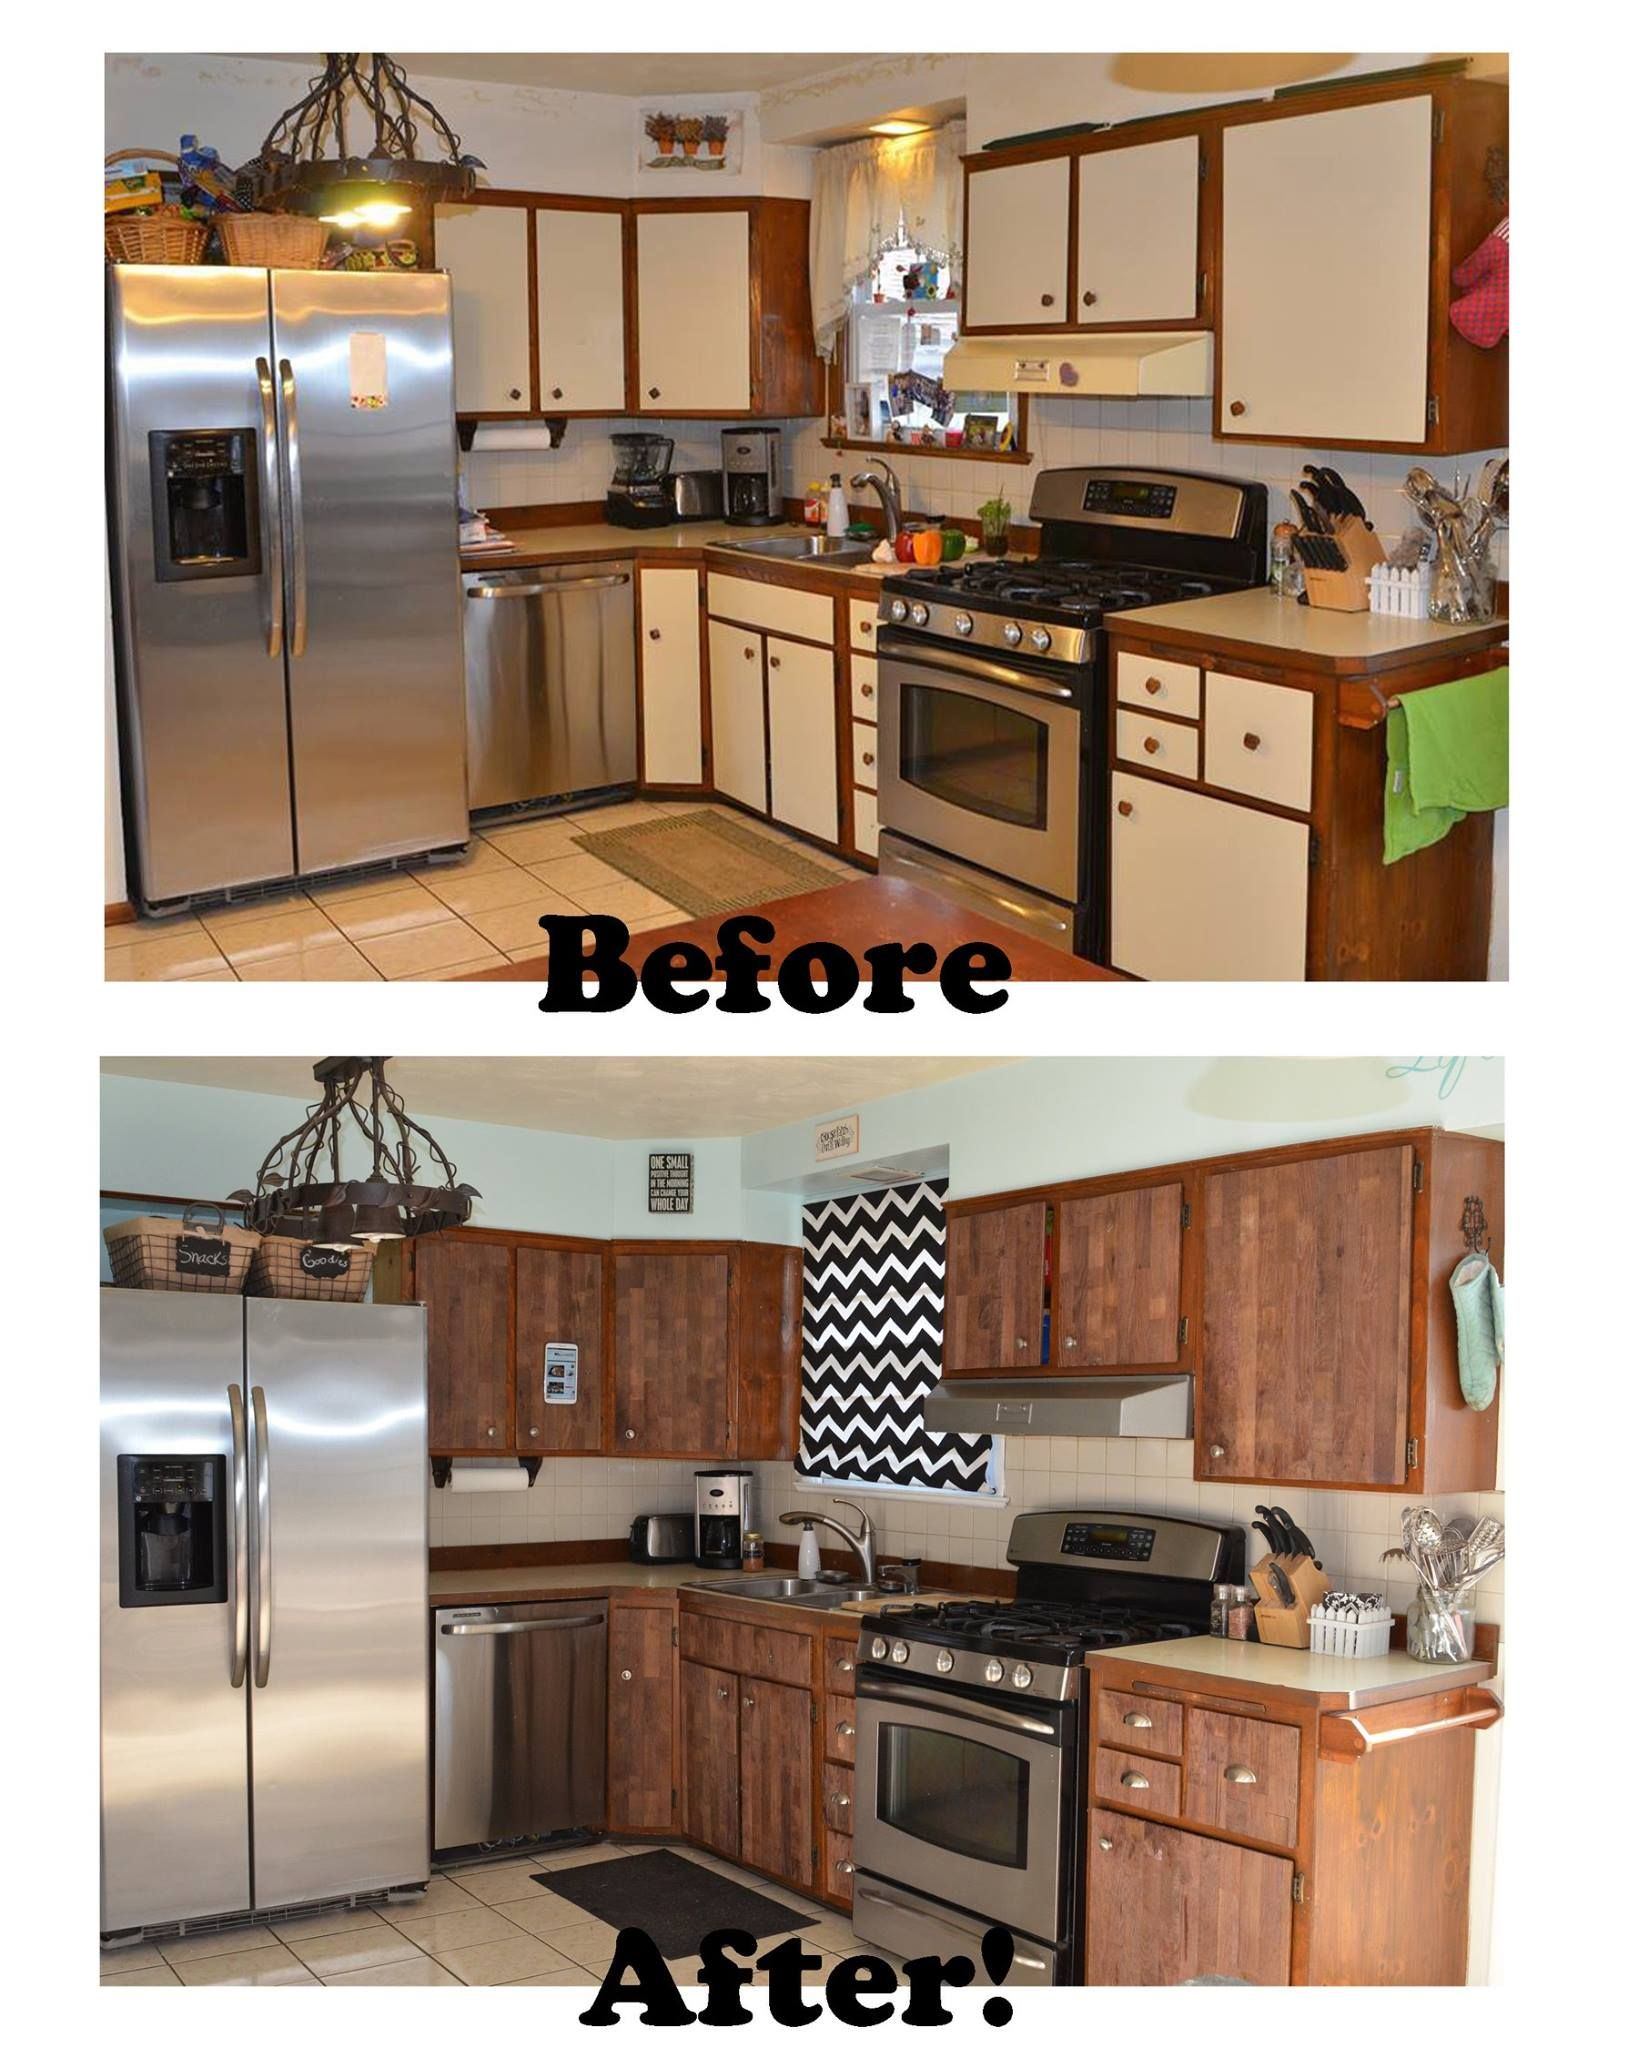 Stikwood before and after kitchen makeover! Ugly laminate